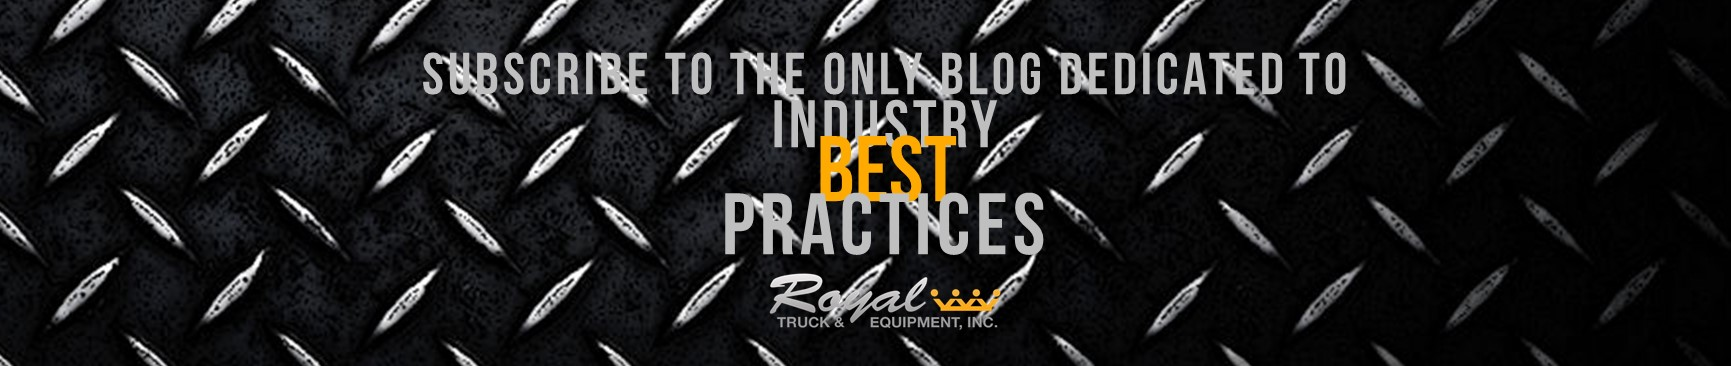 Royal Truck and Equipment TMA Industry Best Practices